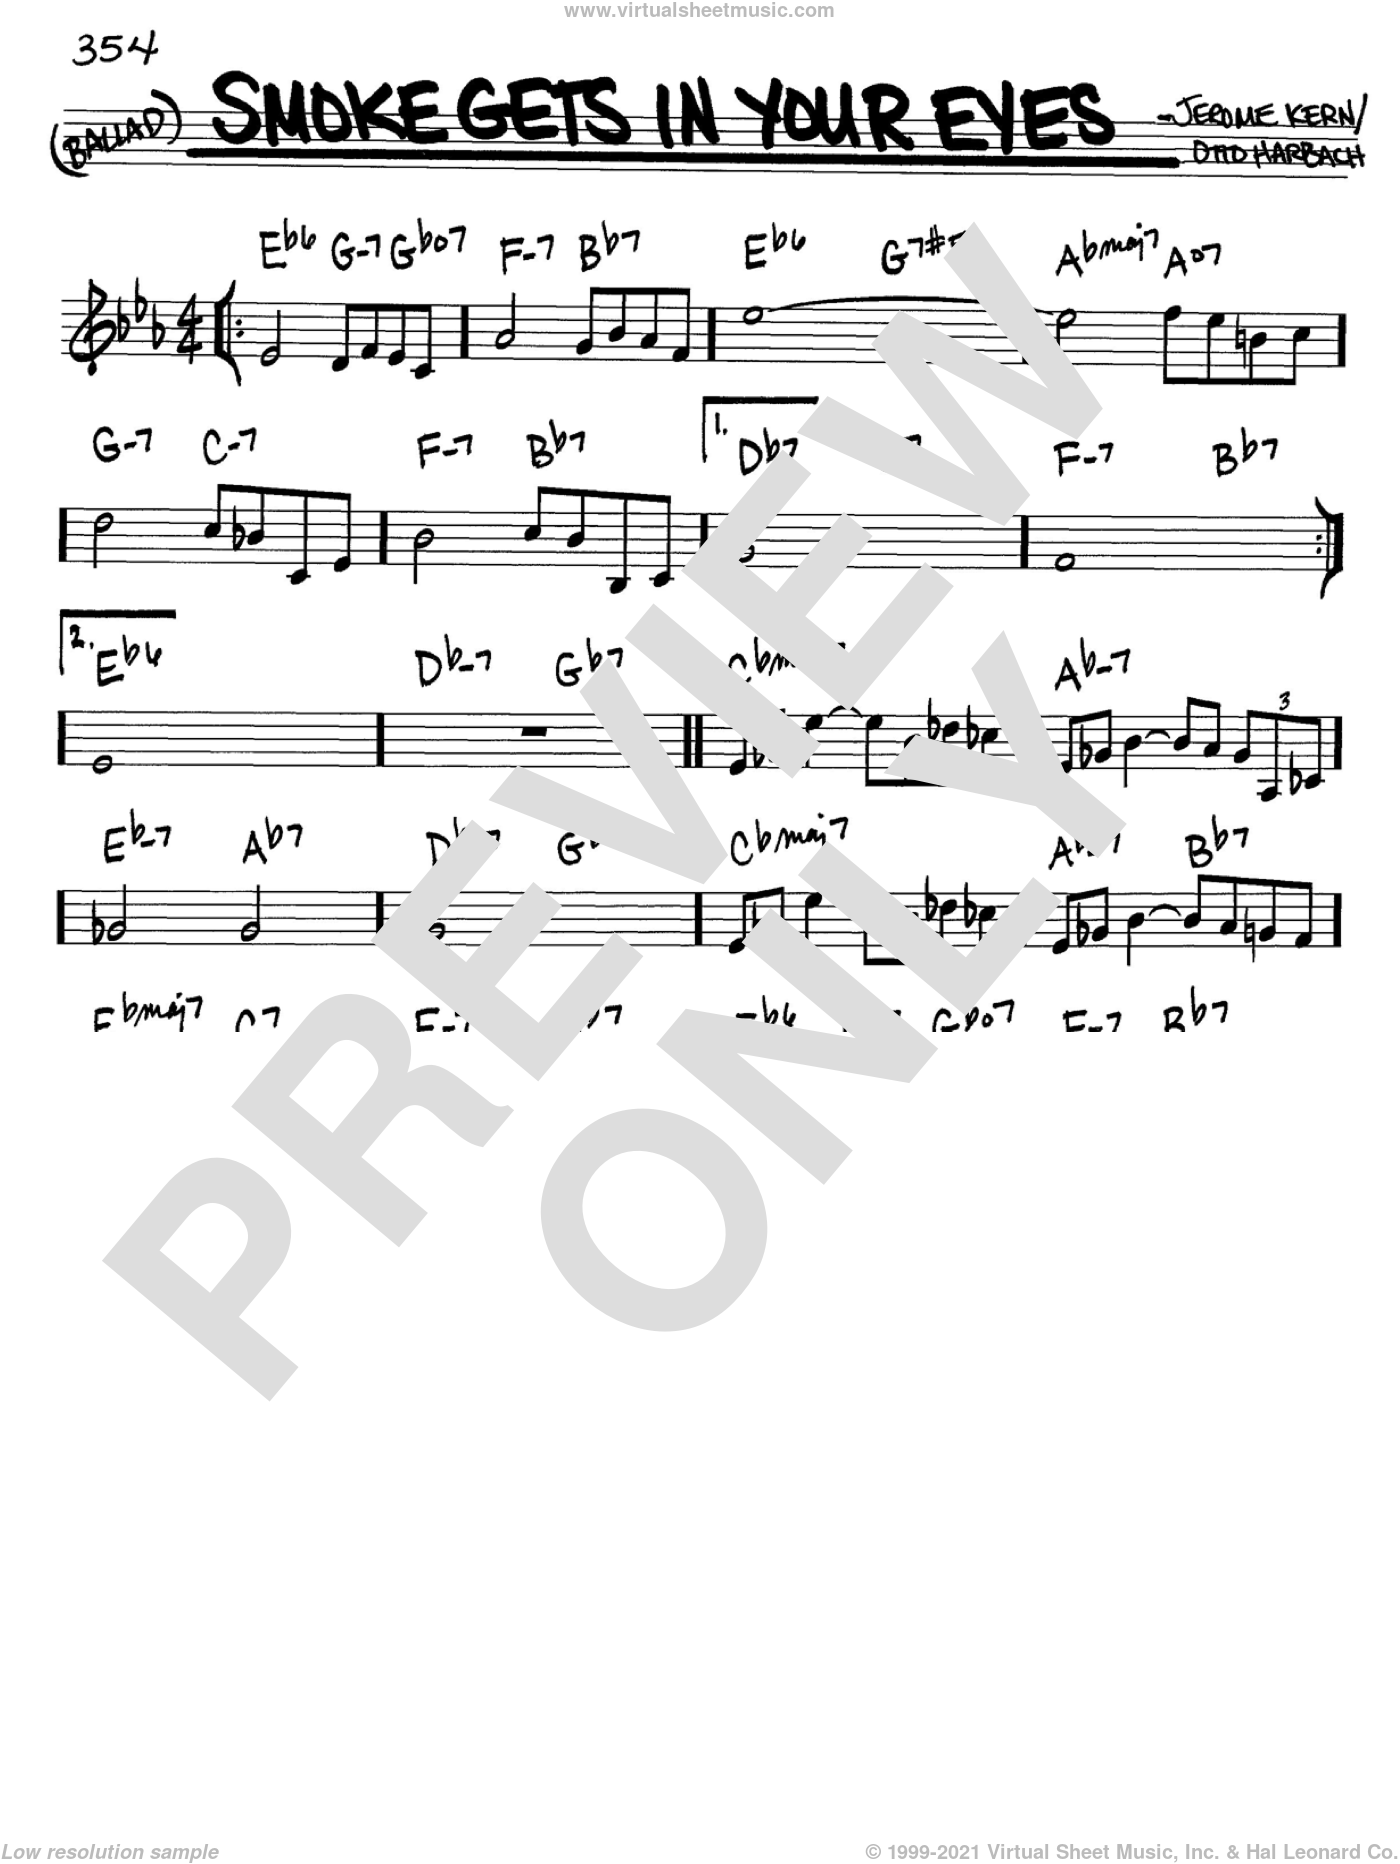 Smoke Gets In Your Eyes sheet music for voice and other instruments (in C) by Jerome Kern, The Platters and Otto Harbach, intermediate skill level